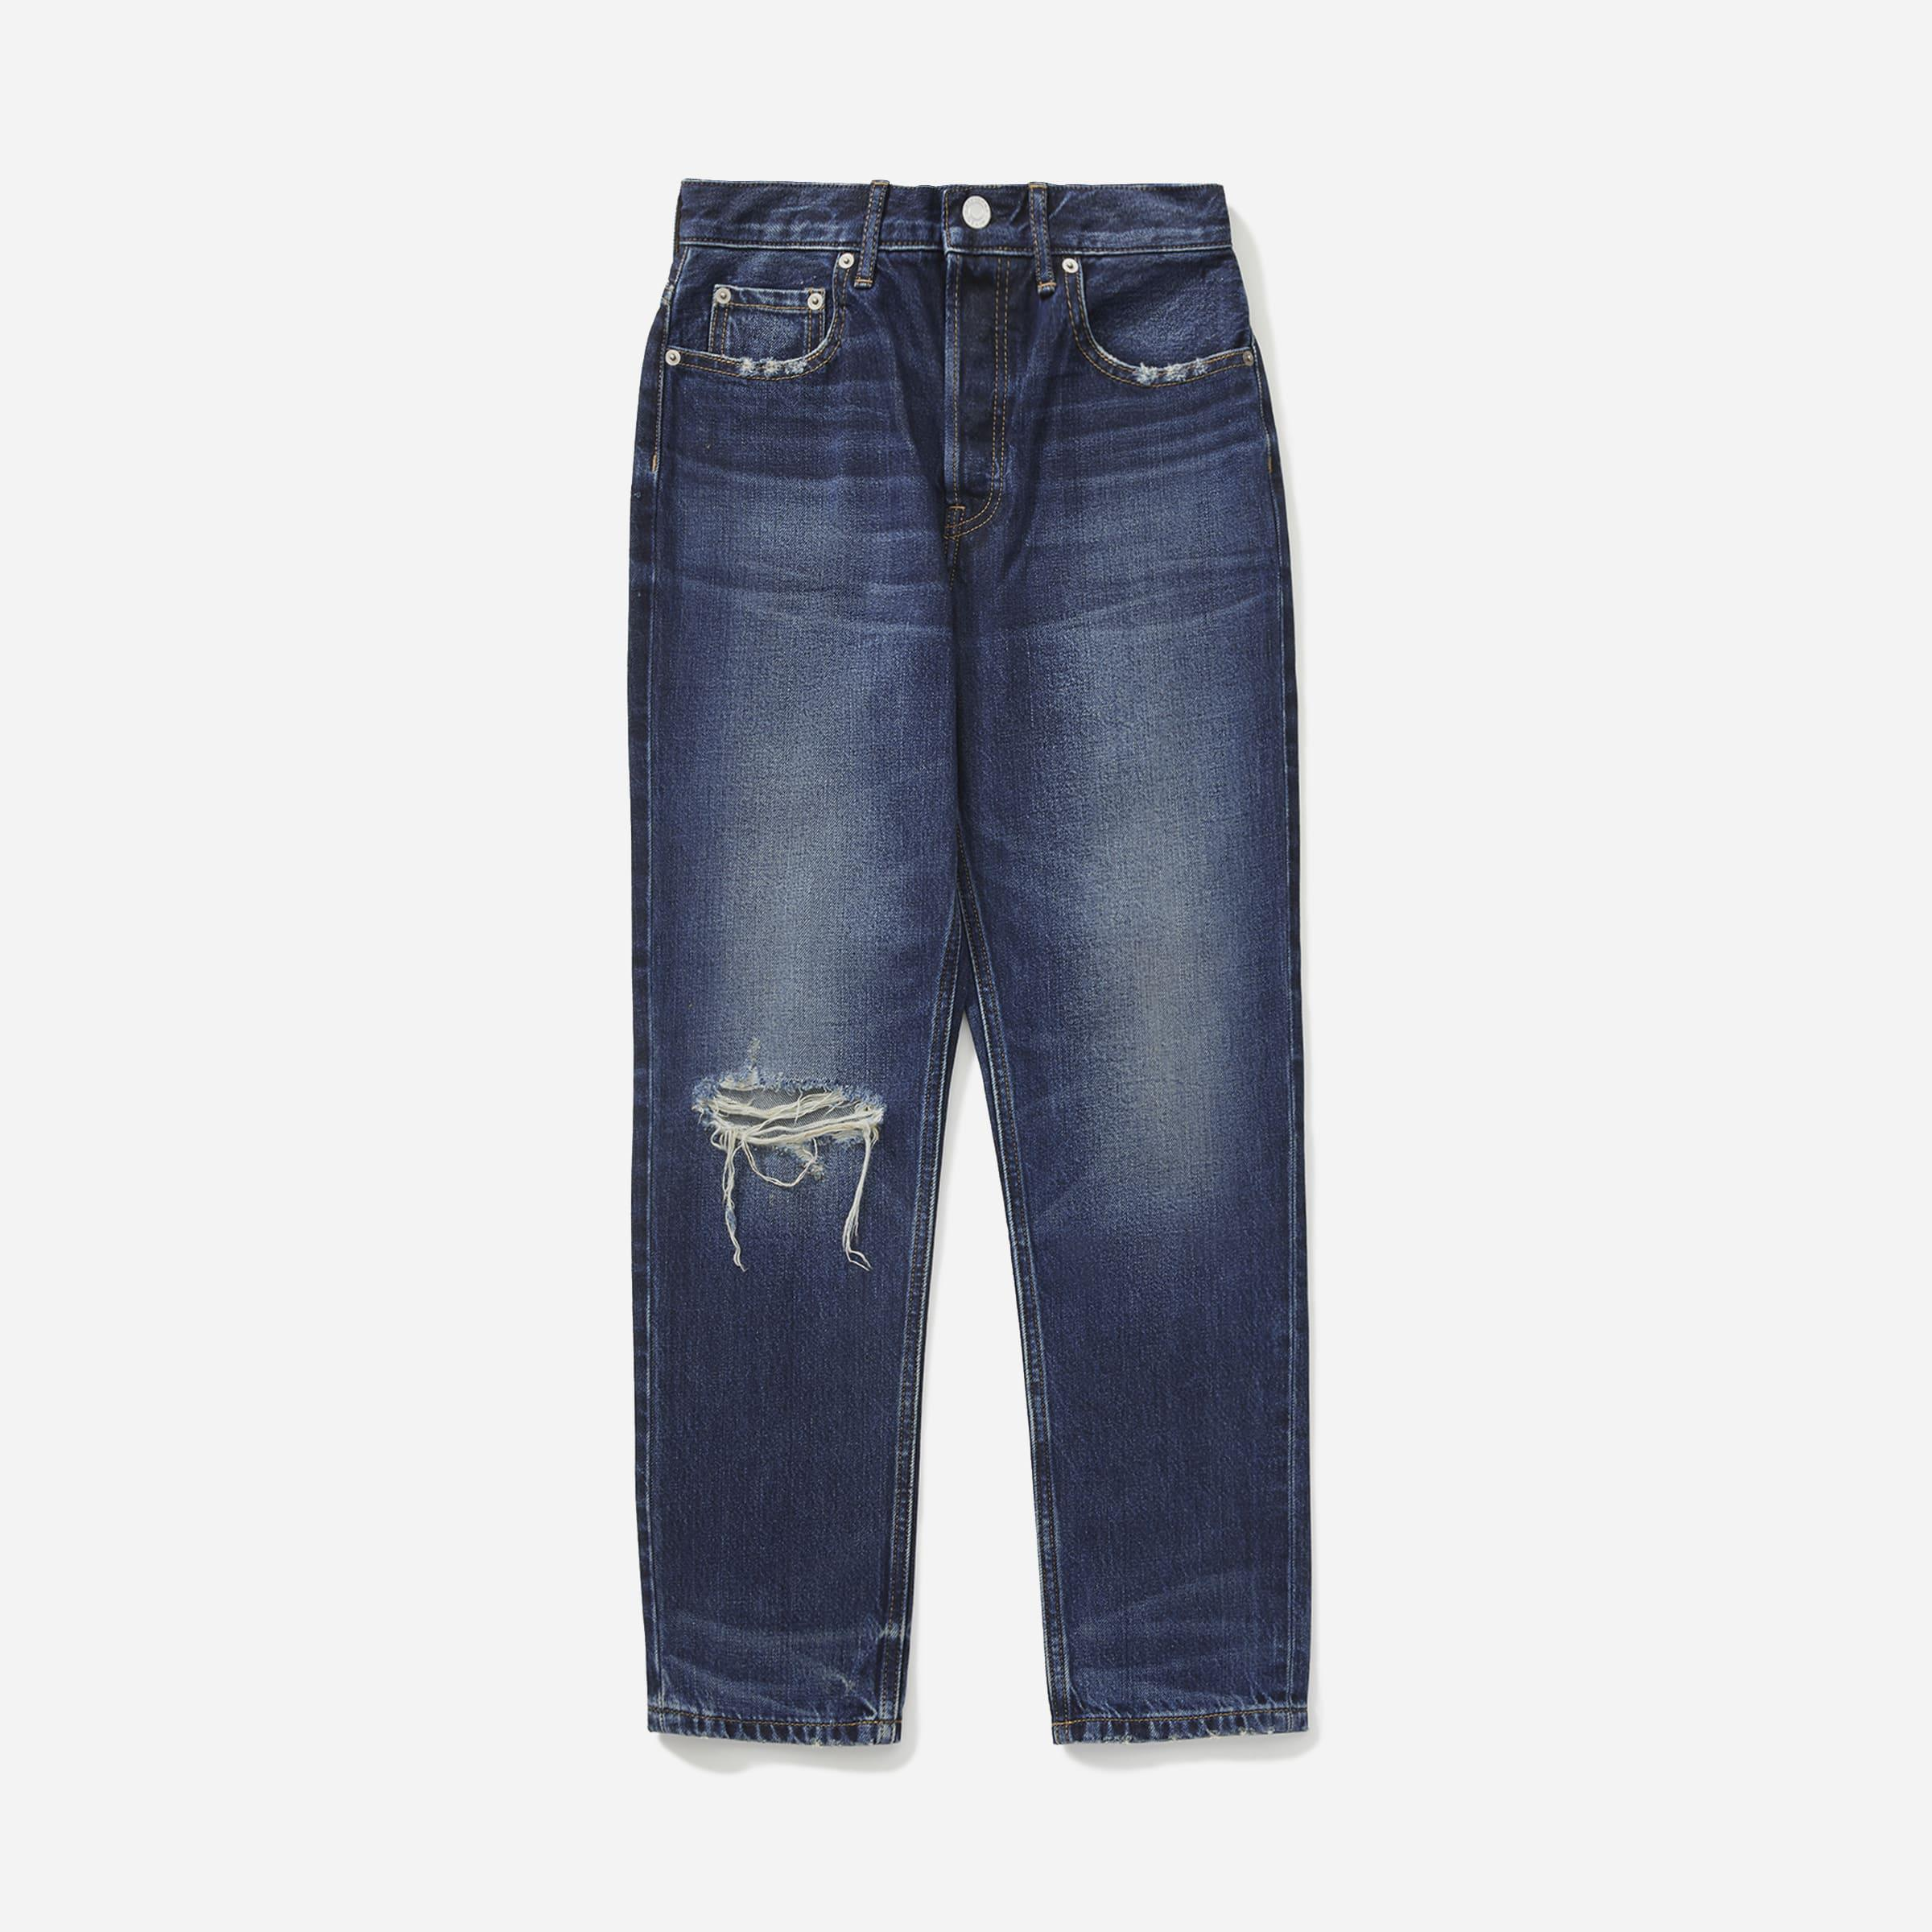 The '90s Cheeky Jean 5